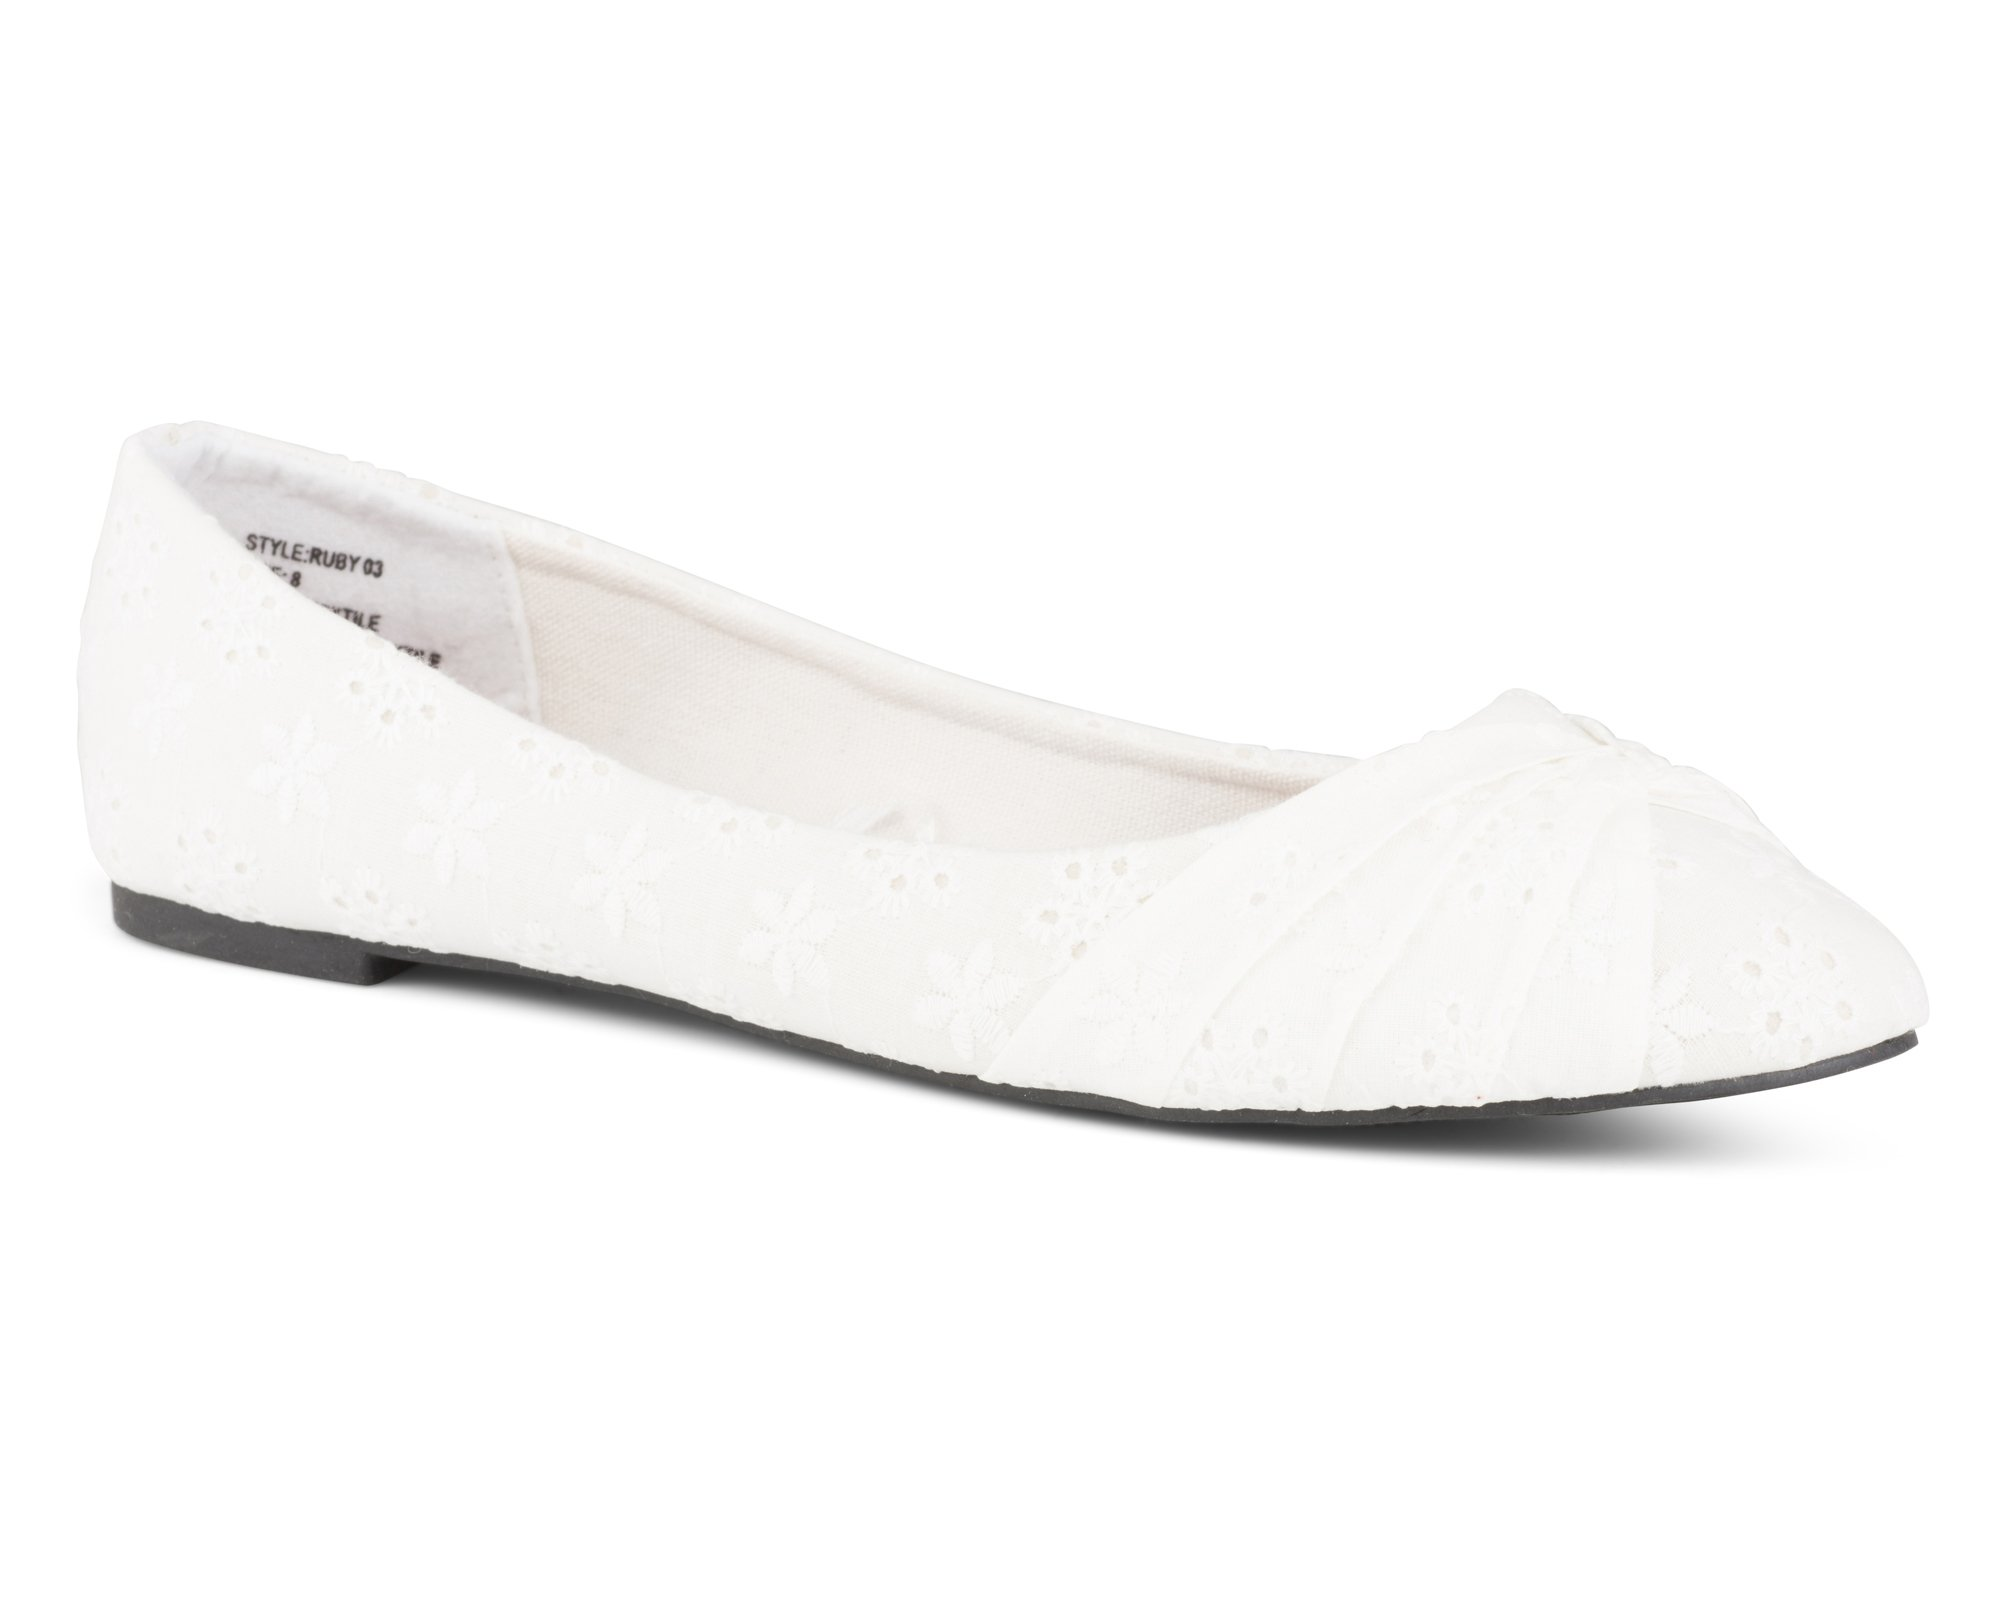 Twisted Women's Ruby Floral Canvas Knotted Toe Ballet Flat - White, Size 7